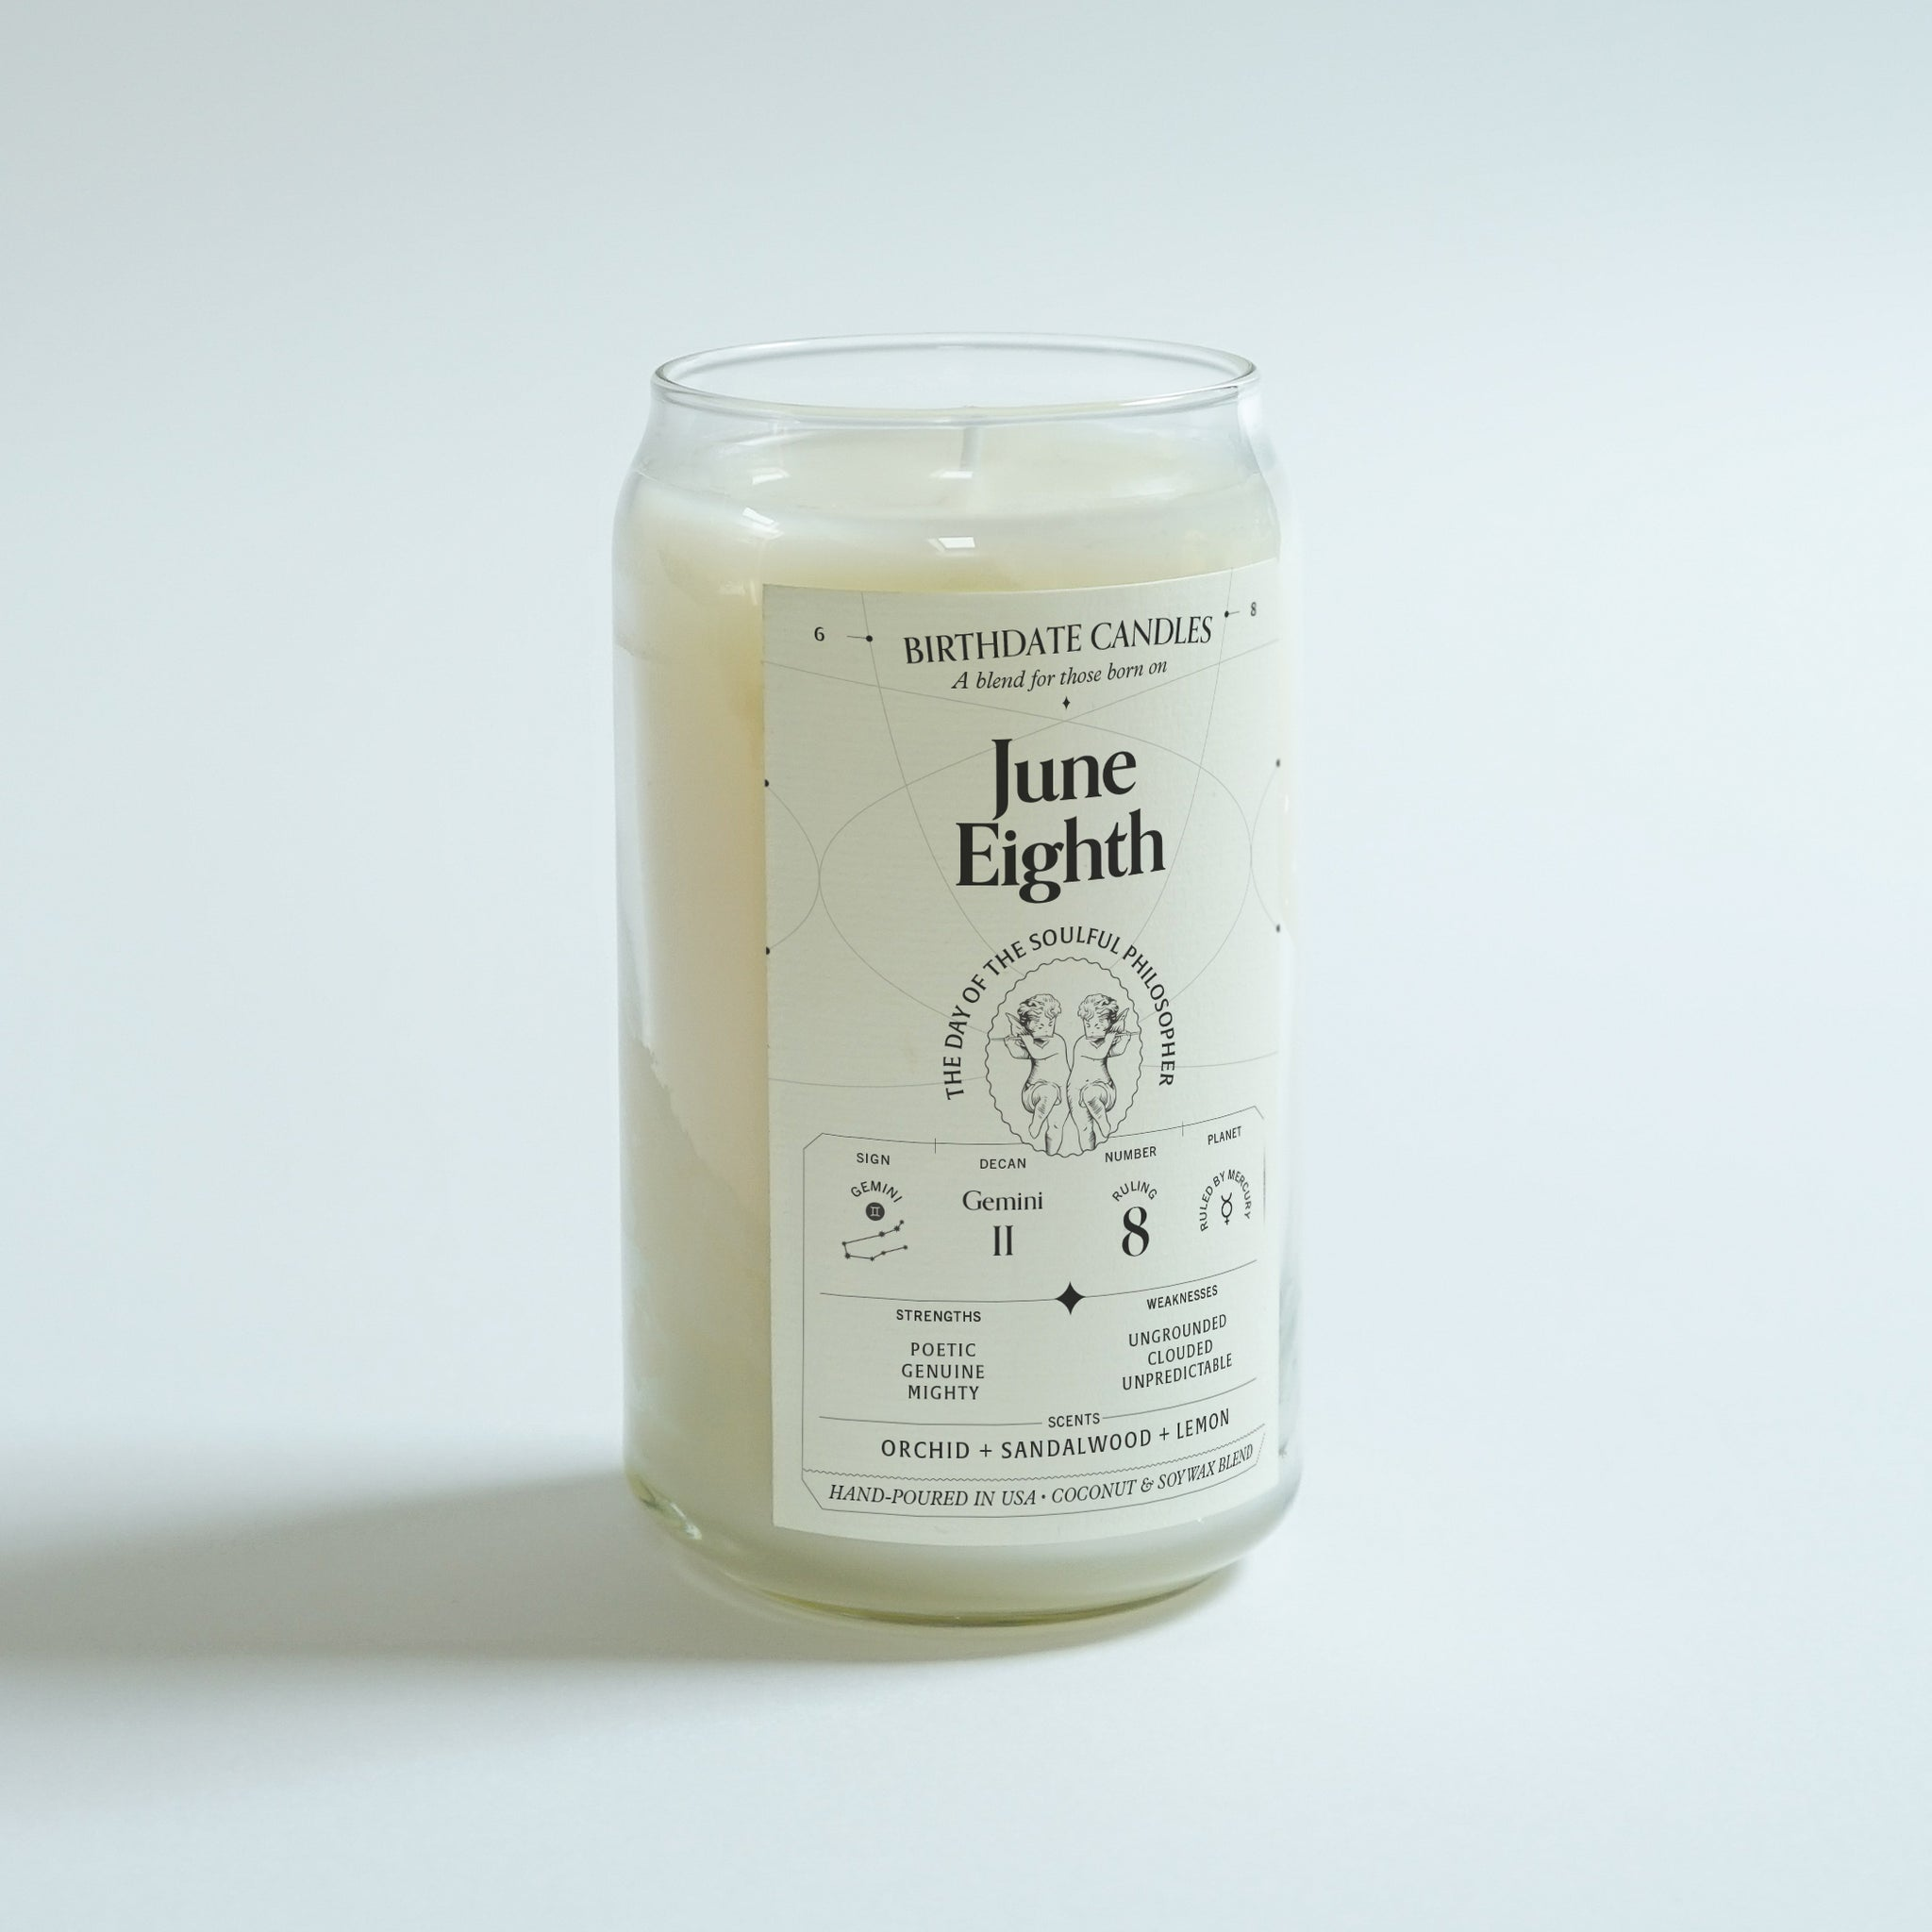 The June Eighth Candle